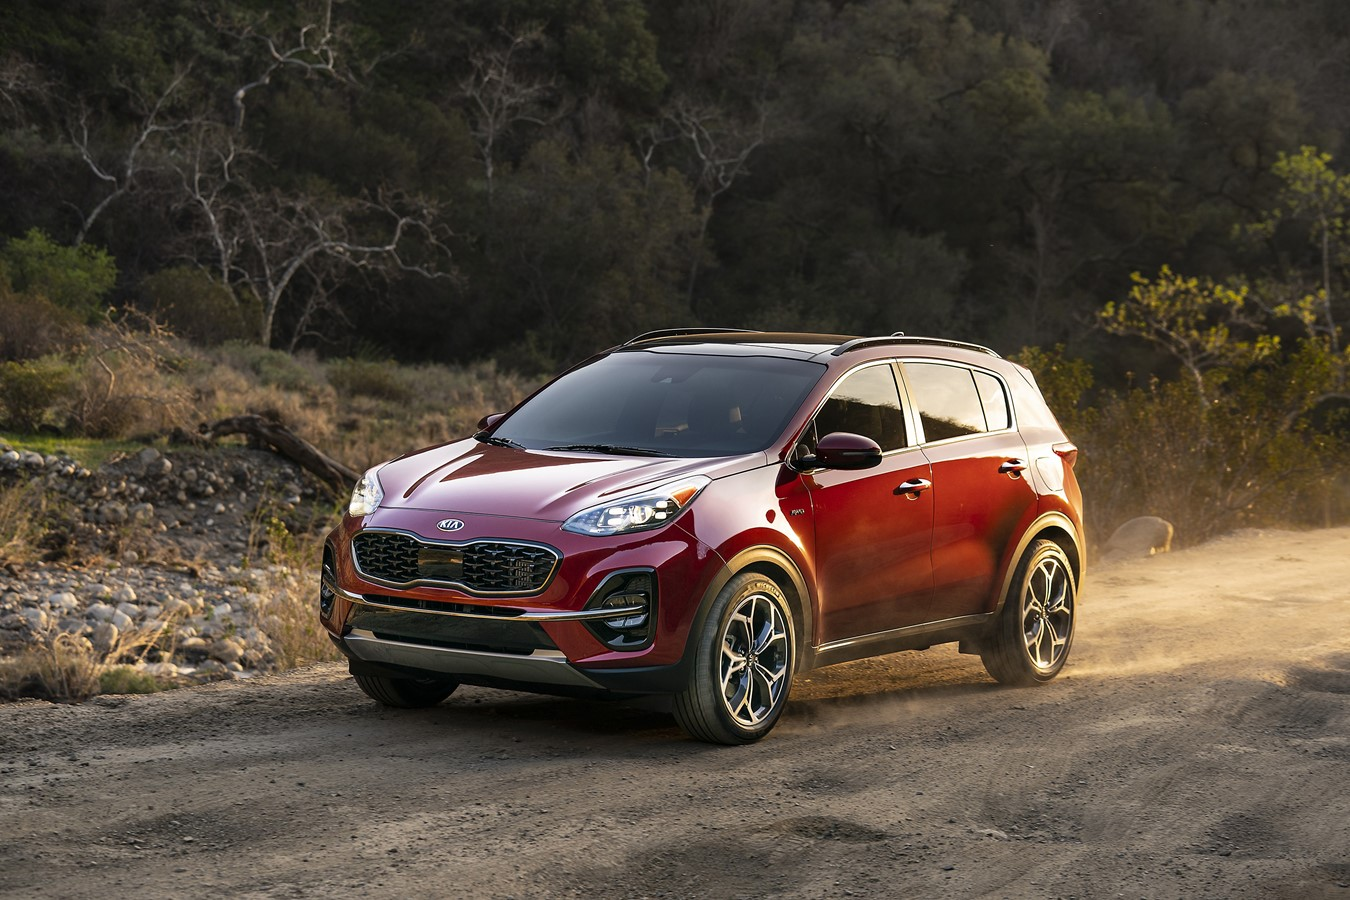 Best Kia Sportage Tires